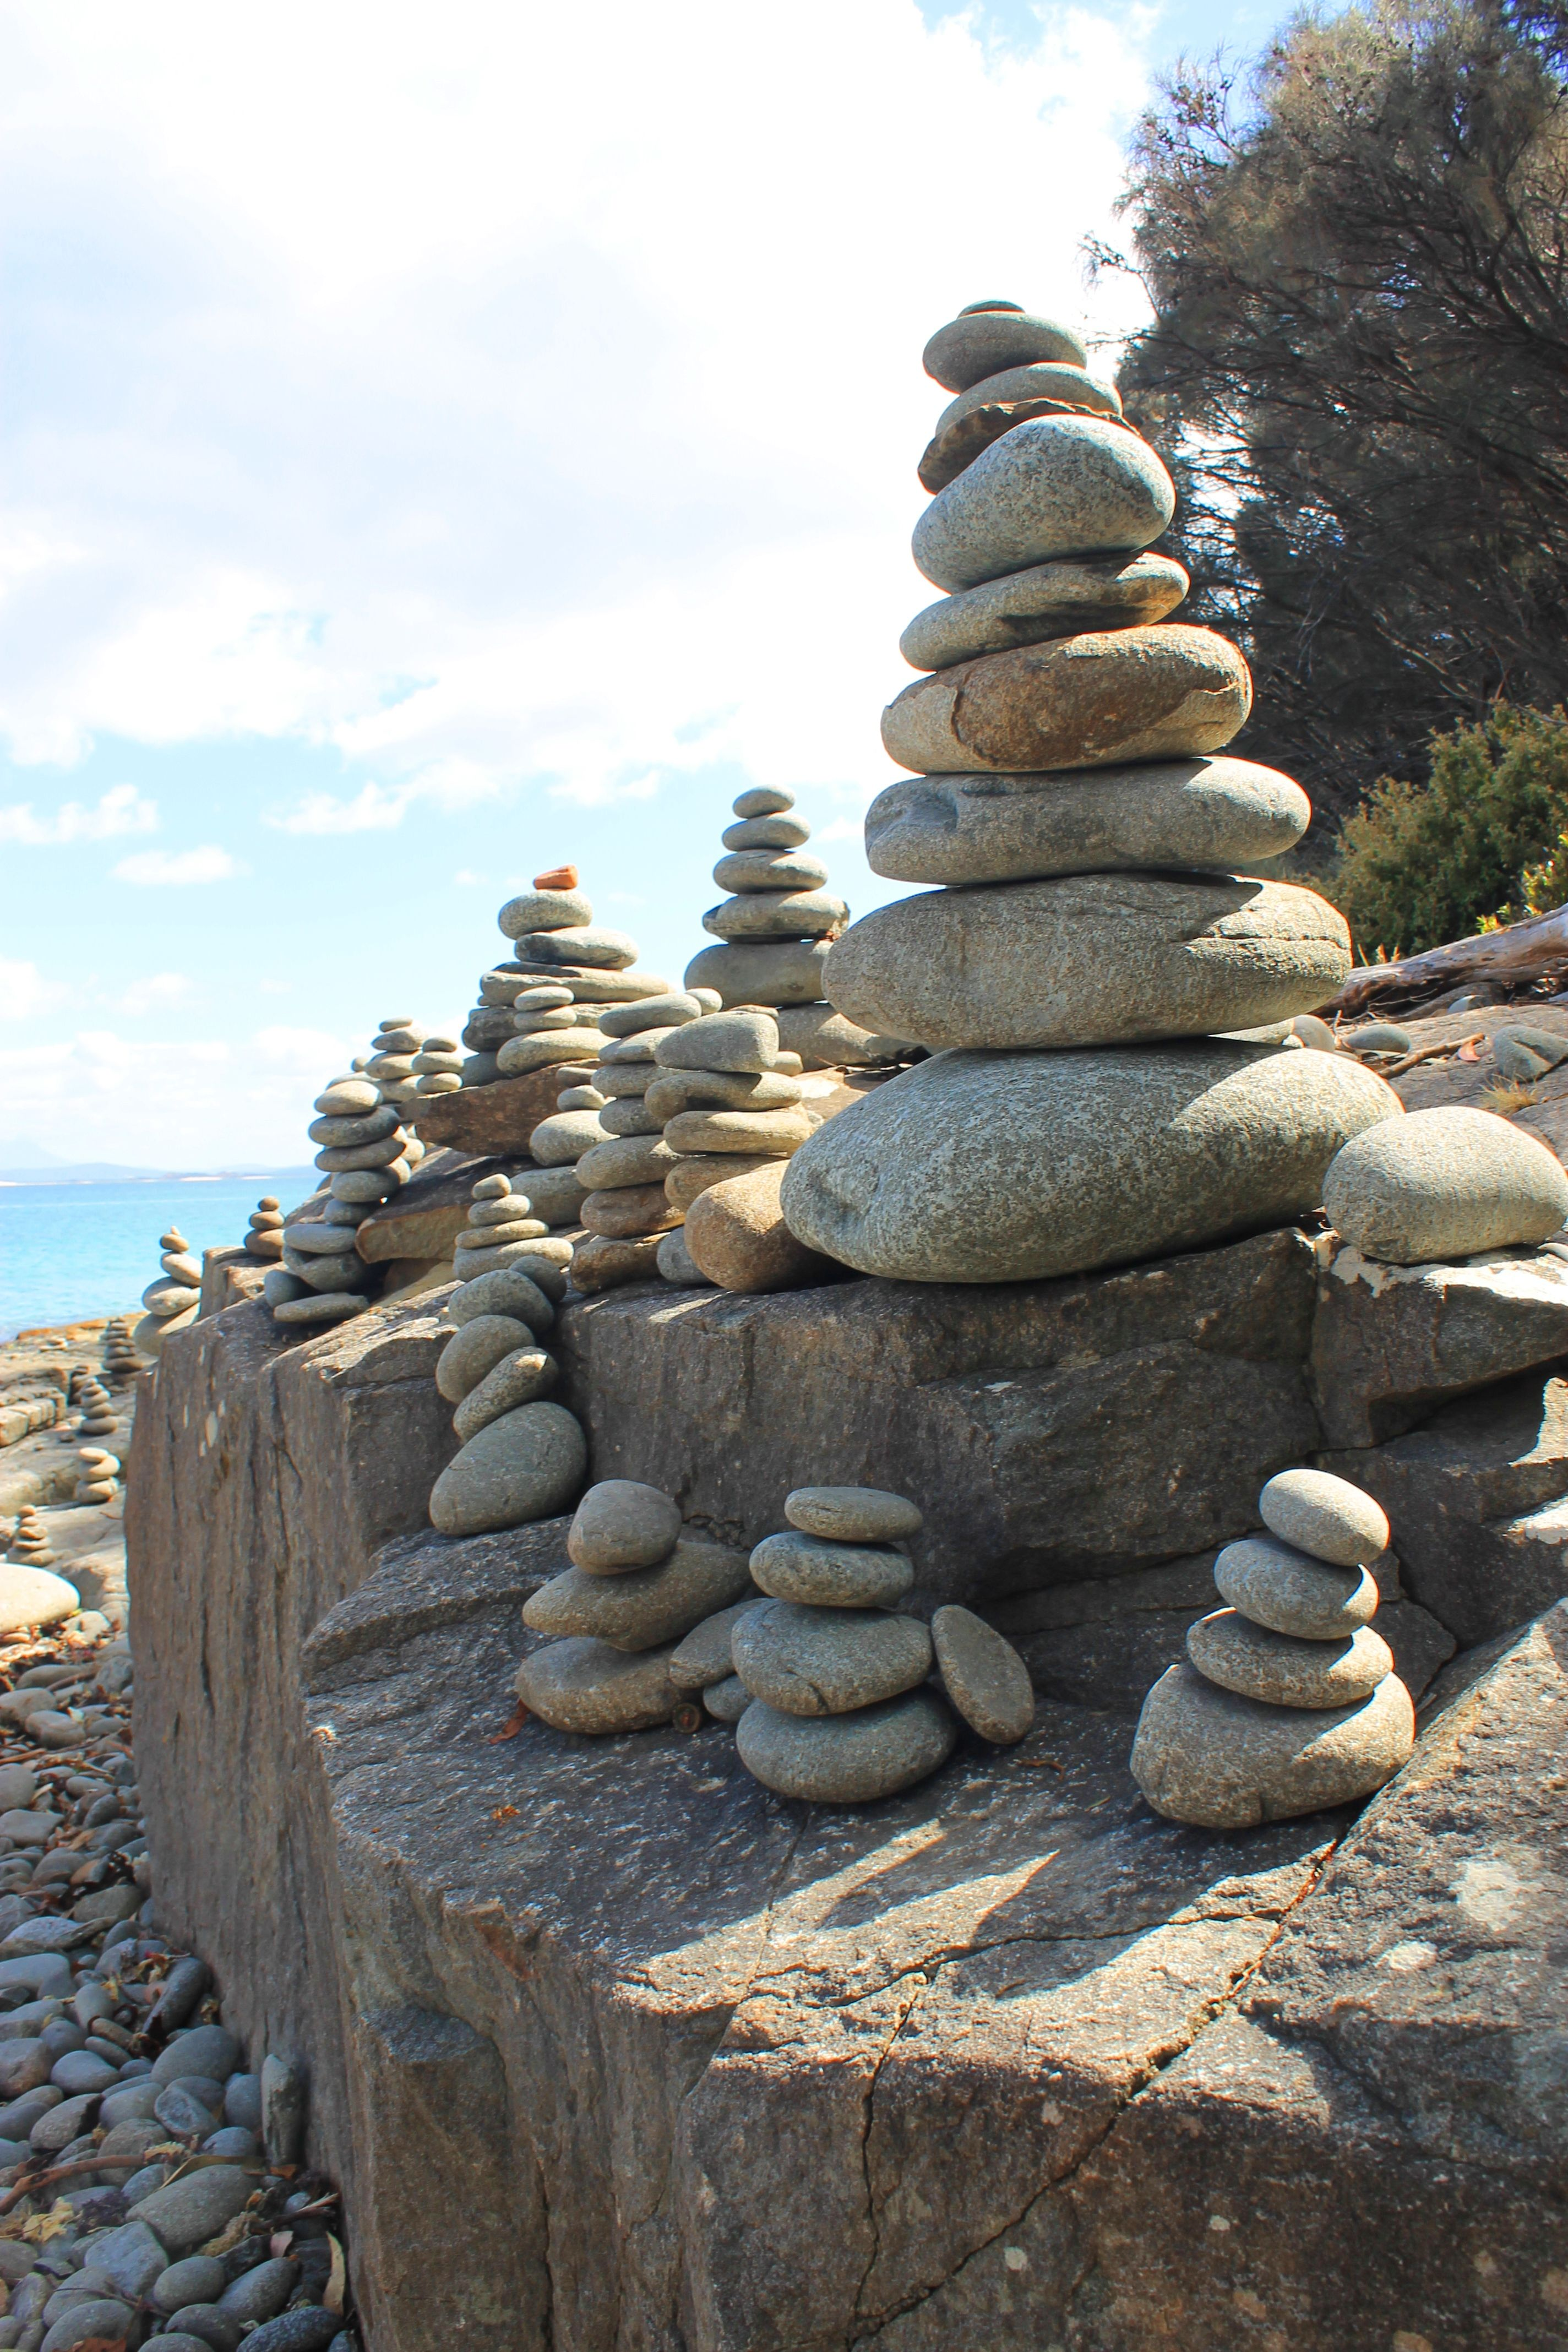 Pin By Sunsinger On Rock Stacking Rock Sculpture Stone Cairns Rock Cairn